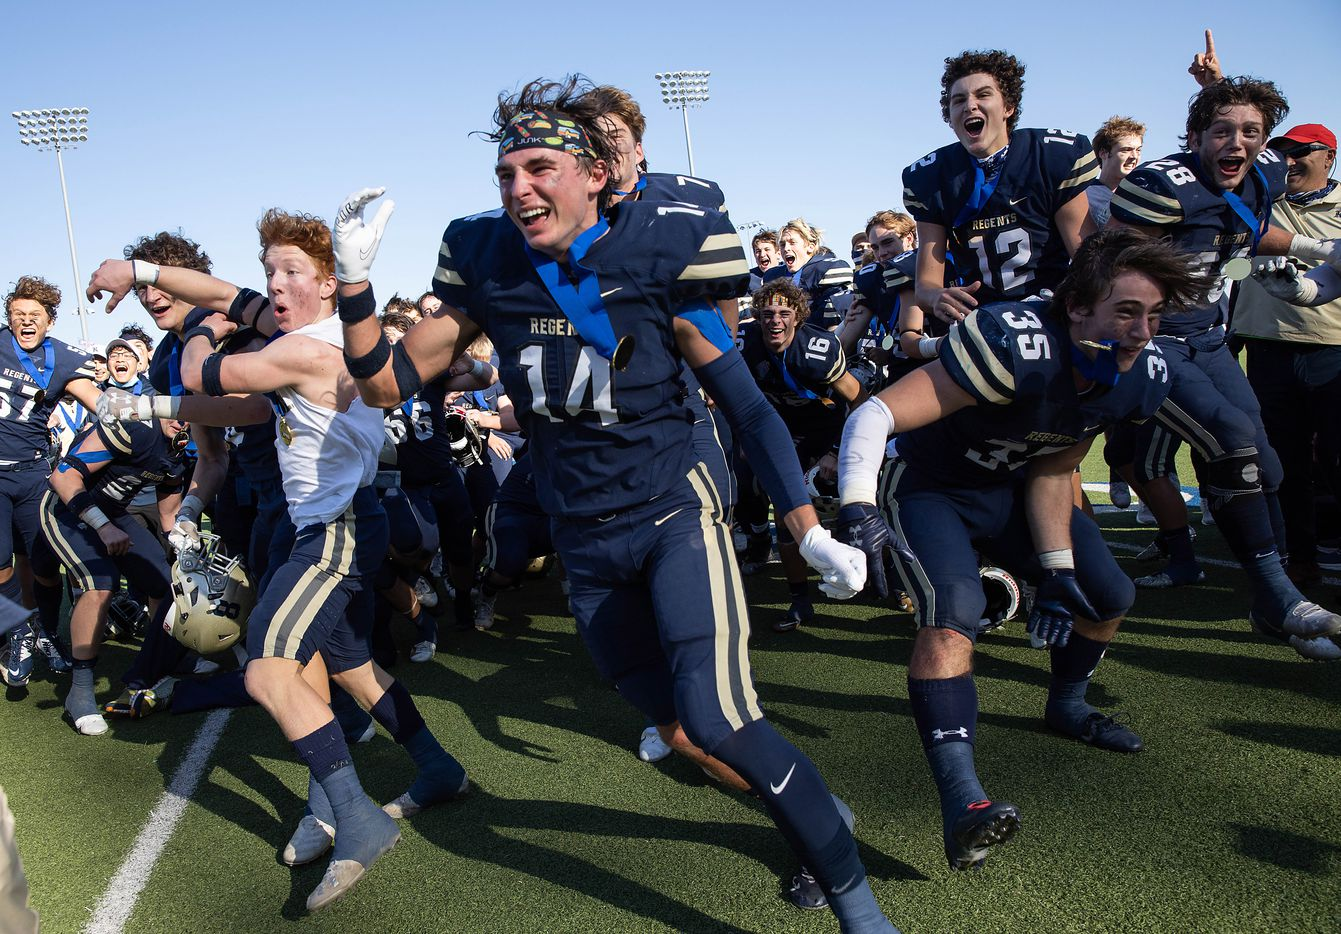 Austin Regents players celebrate after winning a TAPPS Division II state championship game against Dallas Christian in Hewitt on Saturday, Dec. 19, 2020. Austin won with a touchdown in the final second, 26-20.